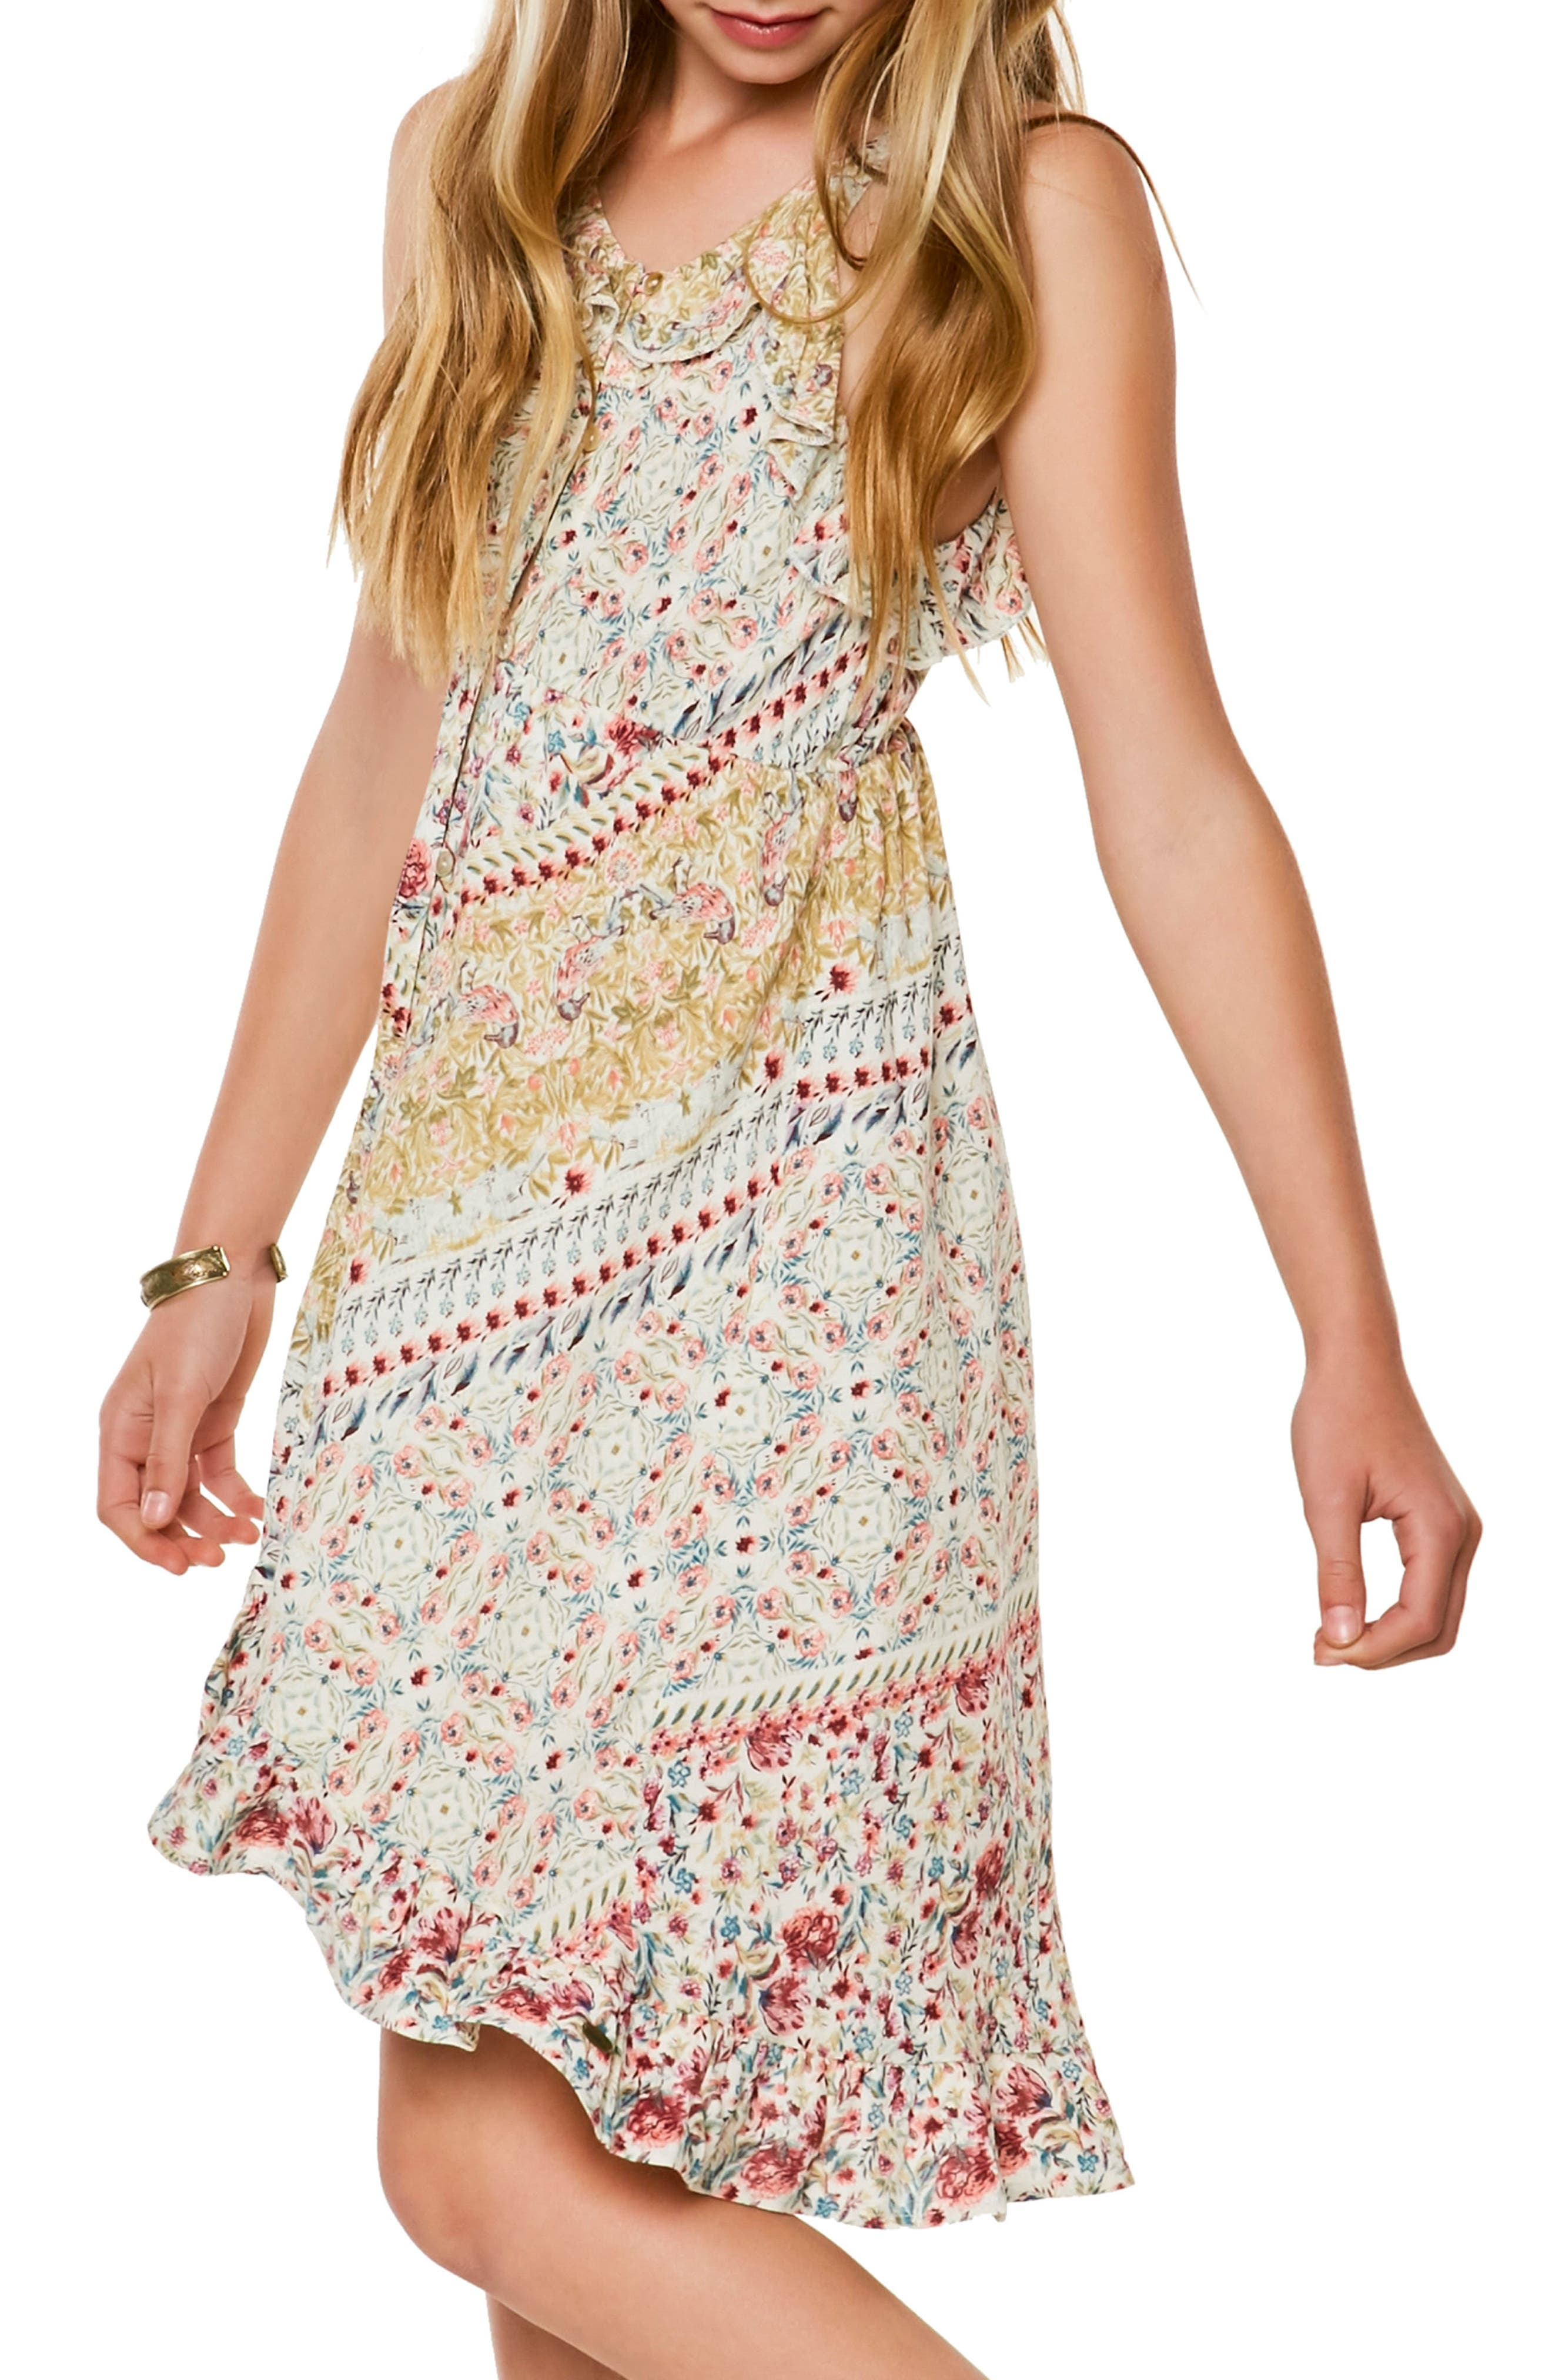 Brooklyn Mixed Print Sundress,                             Alternate thumbnail 4, color,                             Naked - Wwh